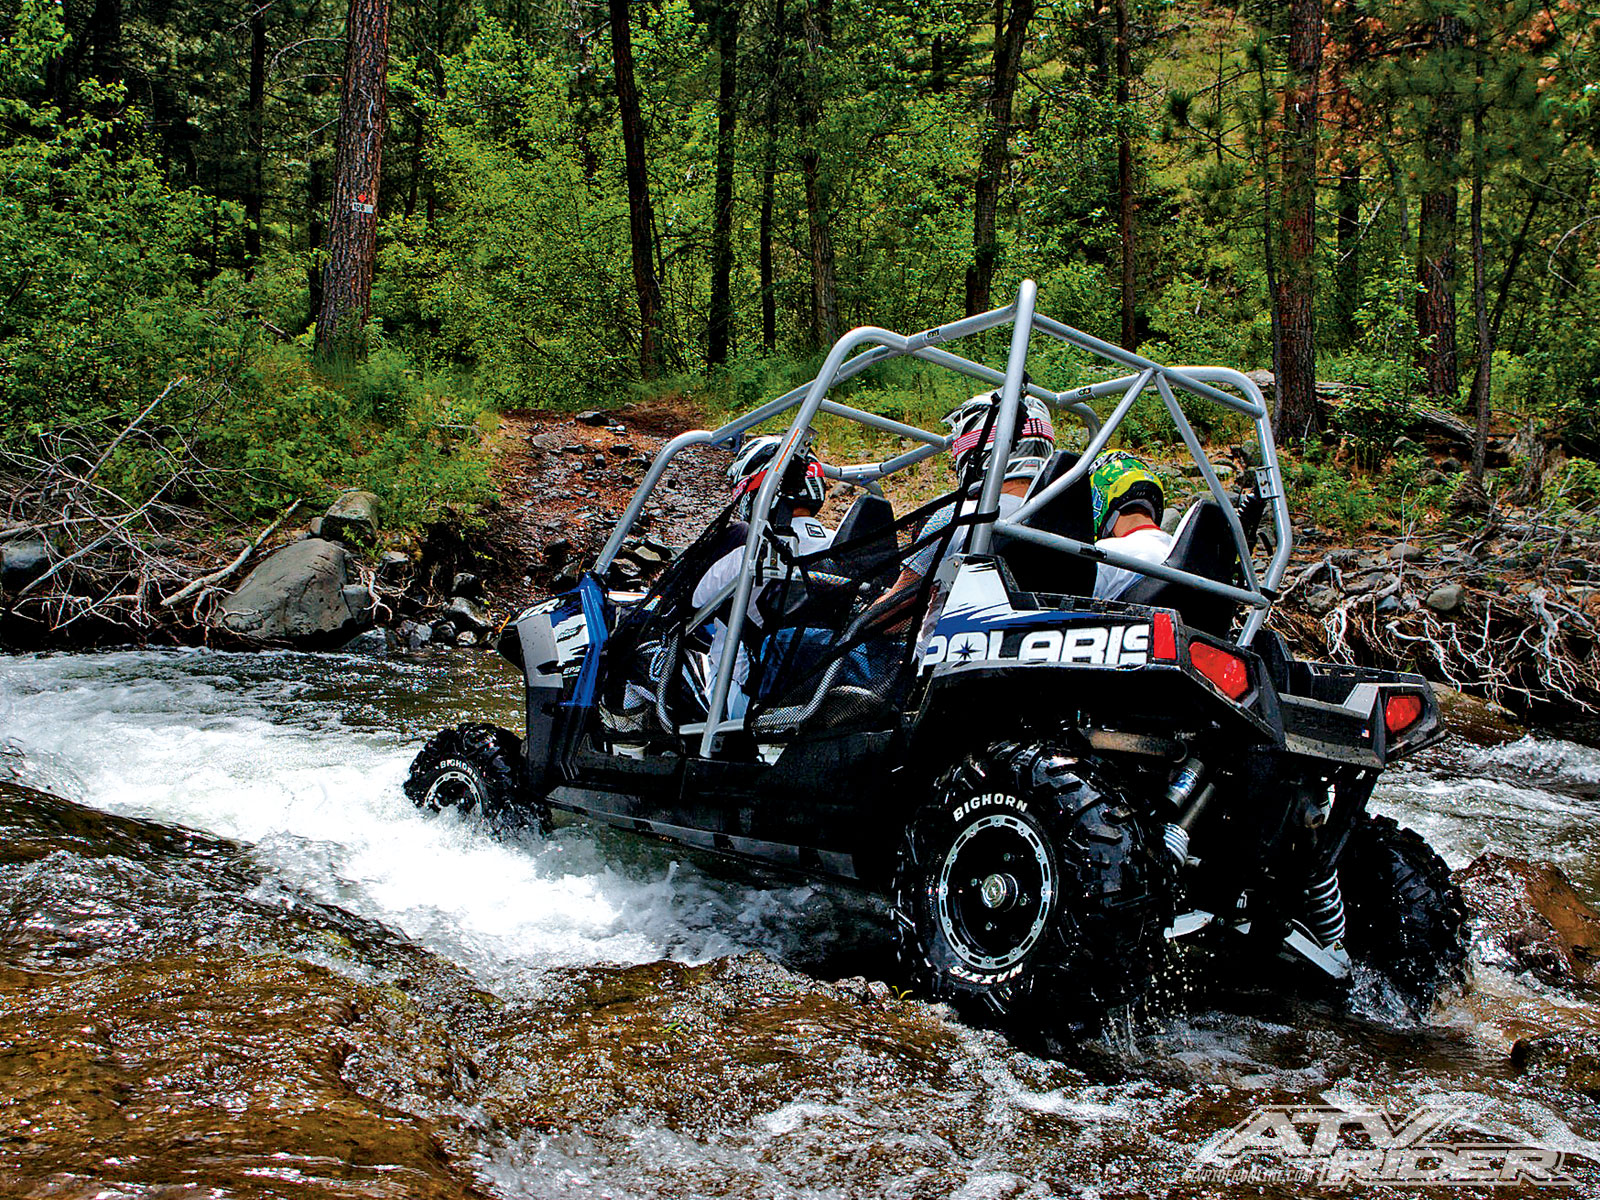 Jeep Travel Equipment Find Jawbone Canyon ATV and Dirt Bike Rentals in CA